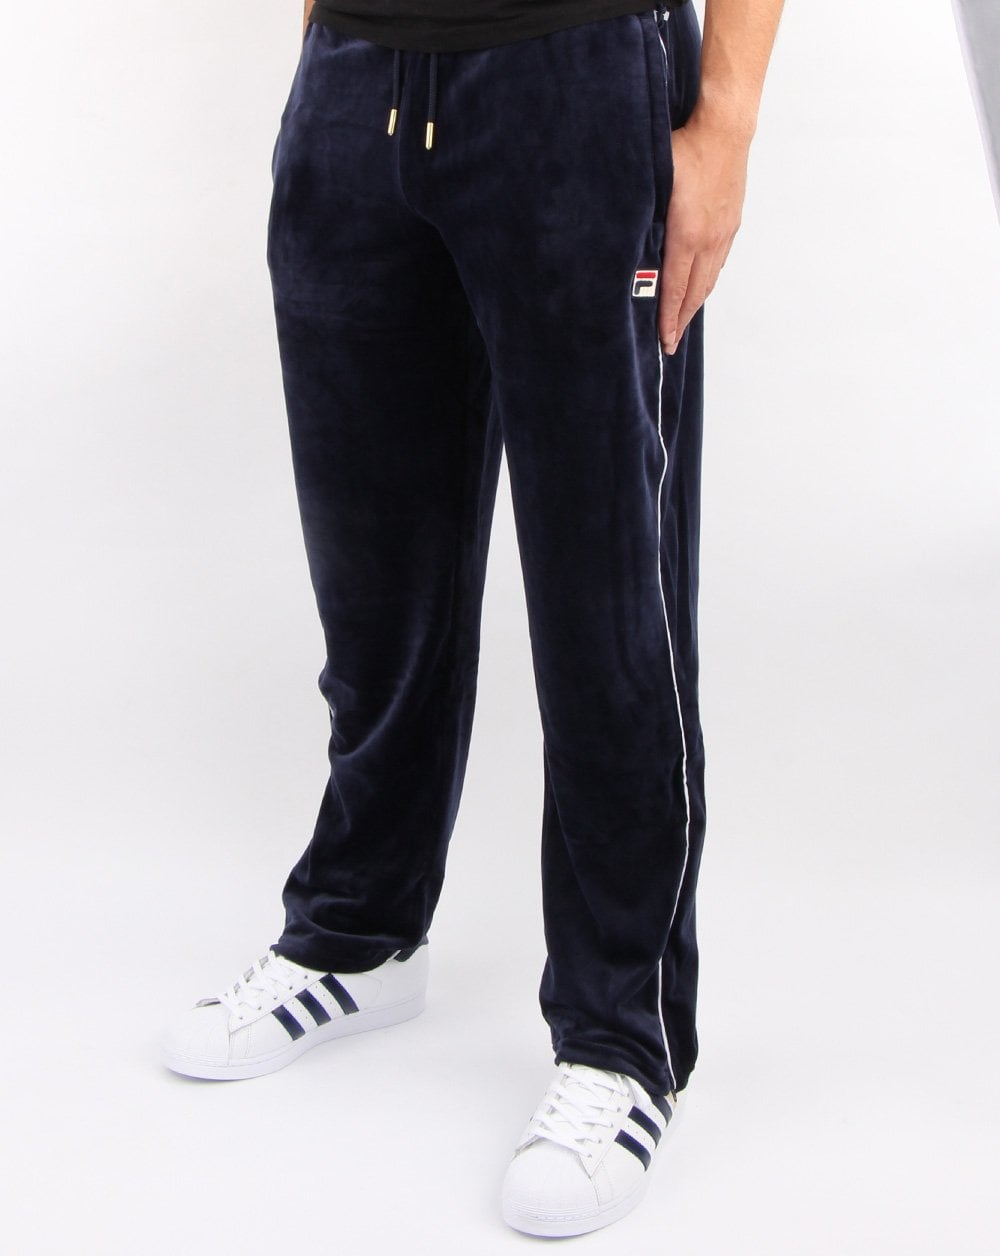 Fila Cyrus Velour Track Pants in navy